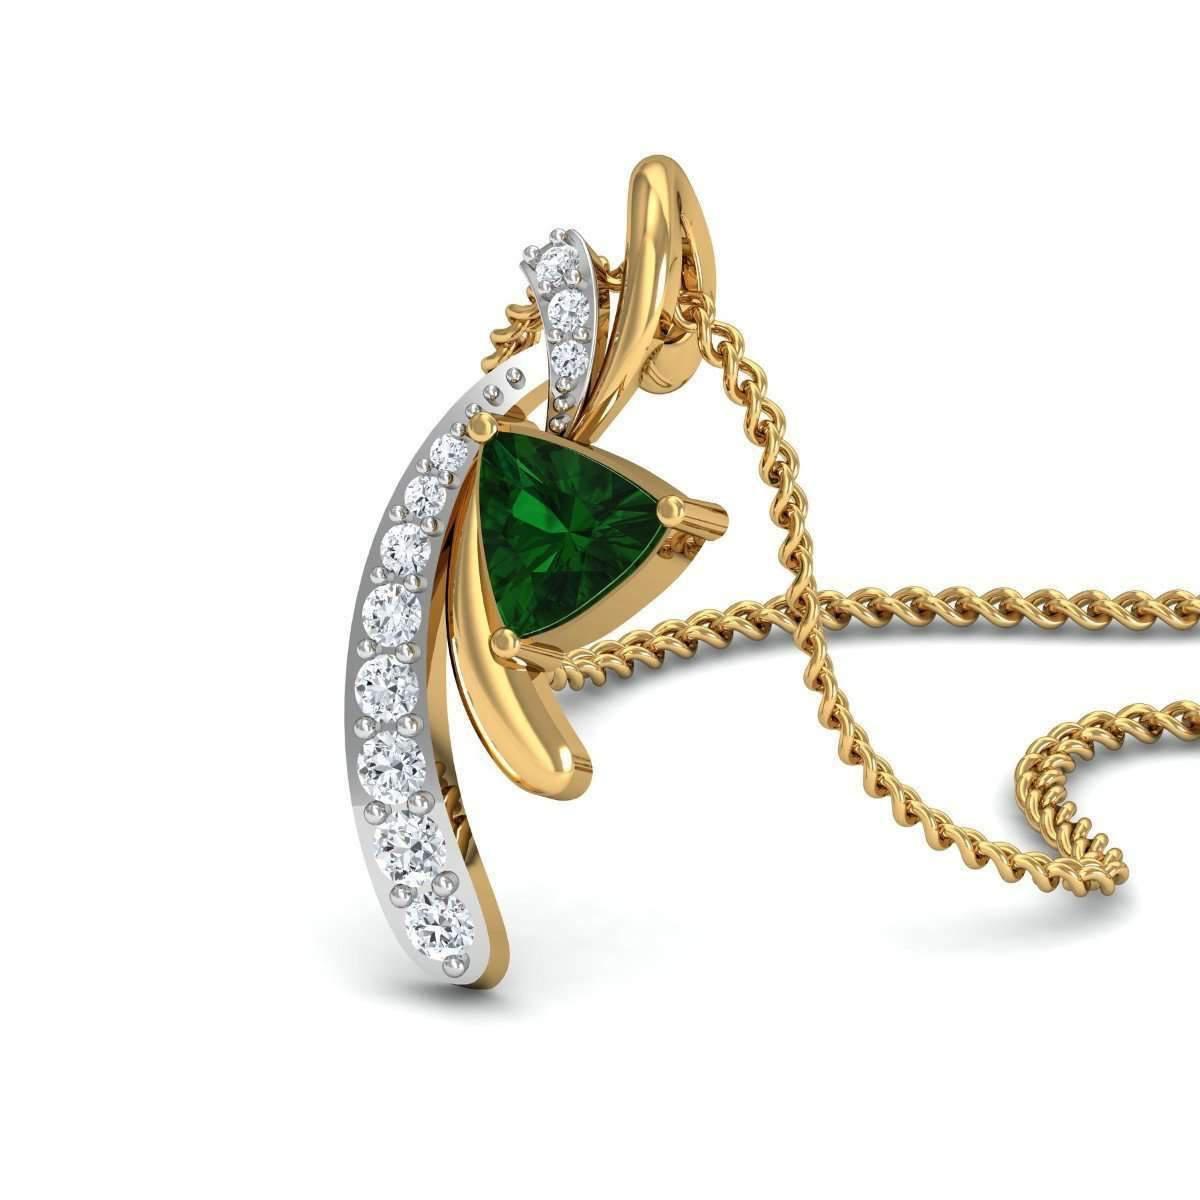 Diamoire Jewels Emerald Cut Emerald Pendant with Premium Diamonds in 10kt Yellow Gold CdUouokRi8